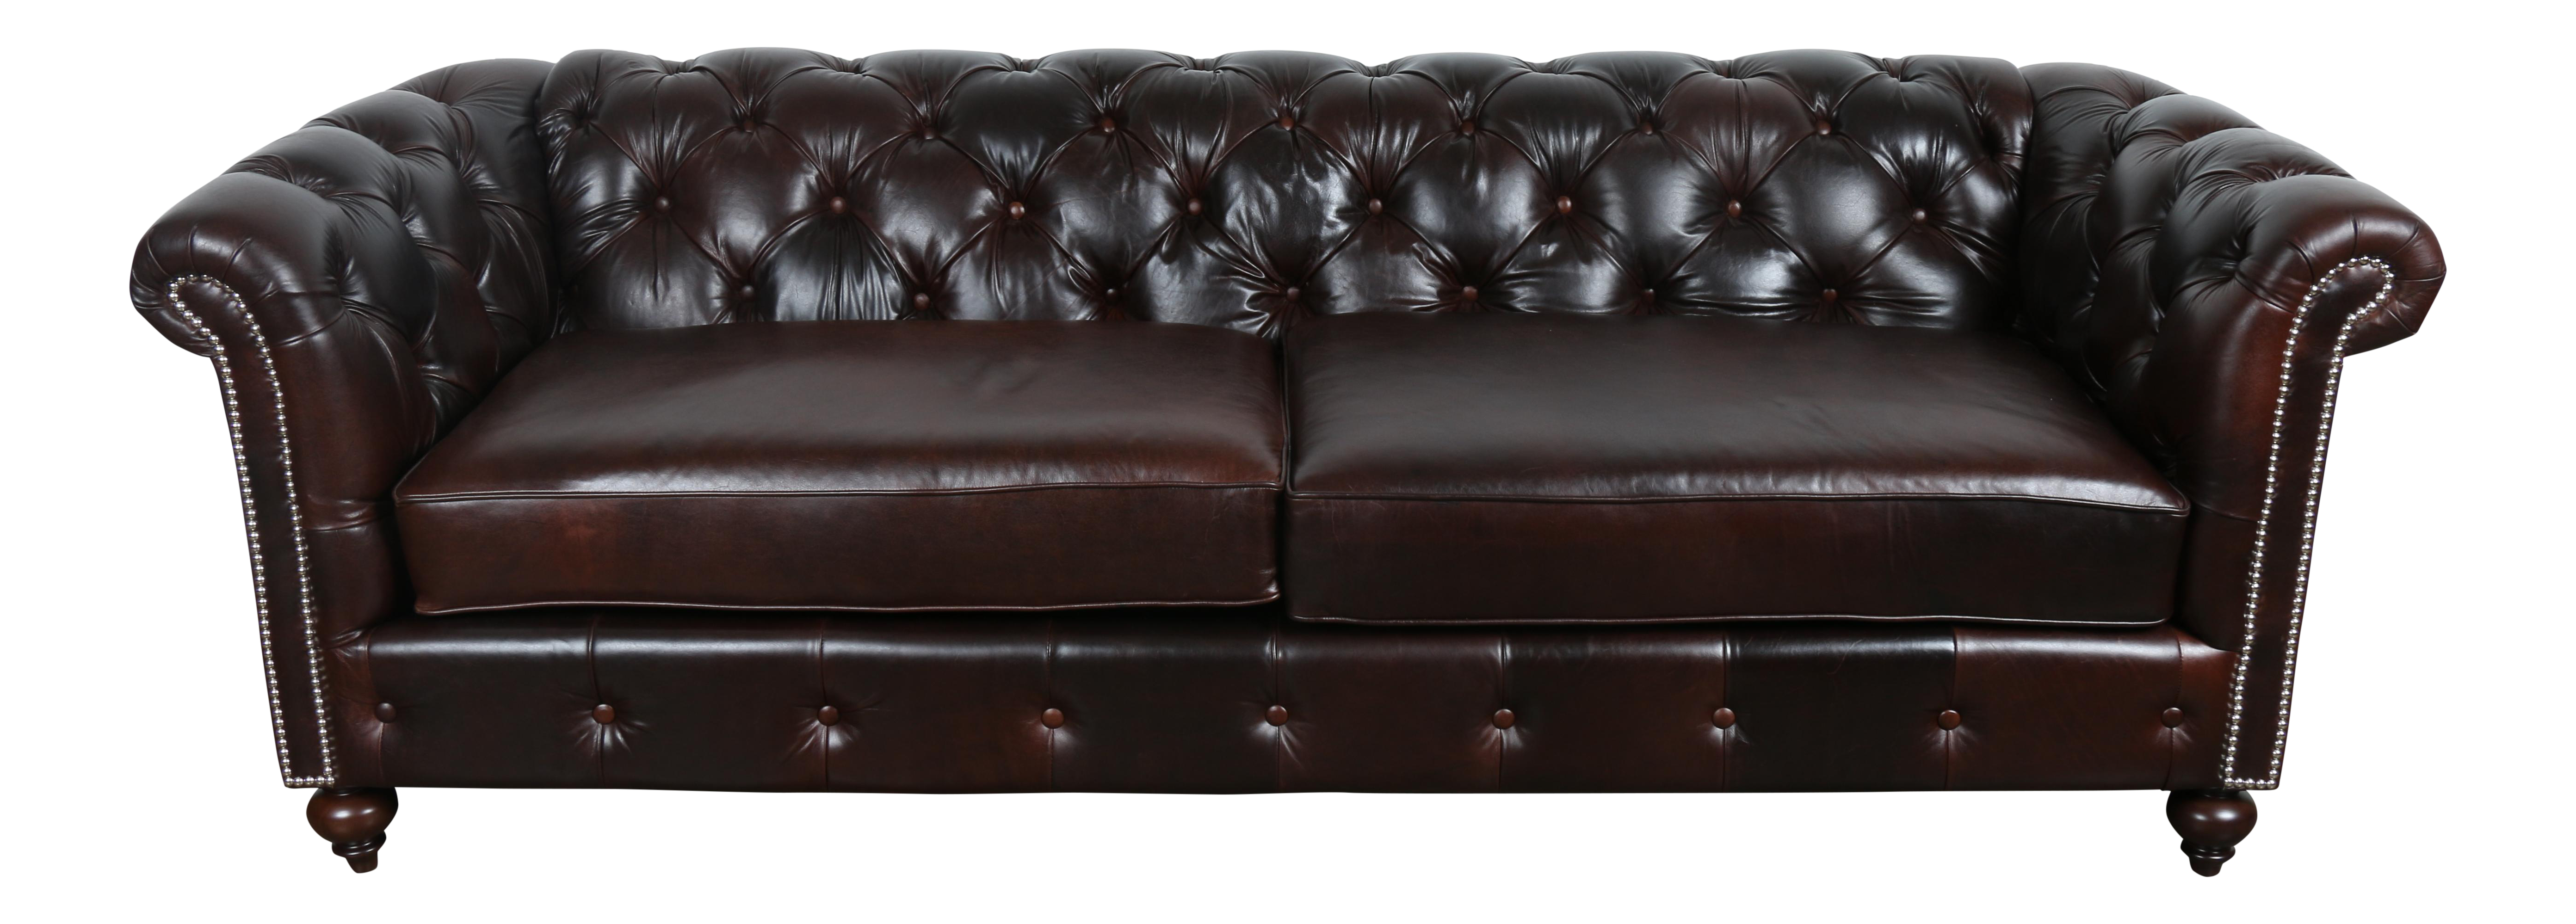 chesterfield leather sofa chairish. Black Bedroom Furniture Sets. Home Design Ideas